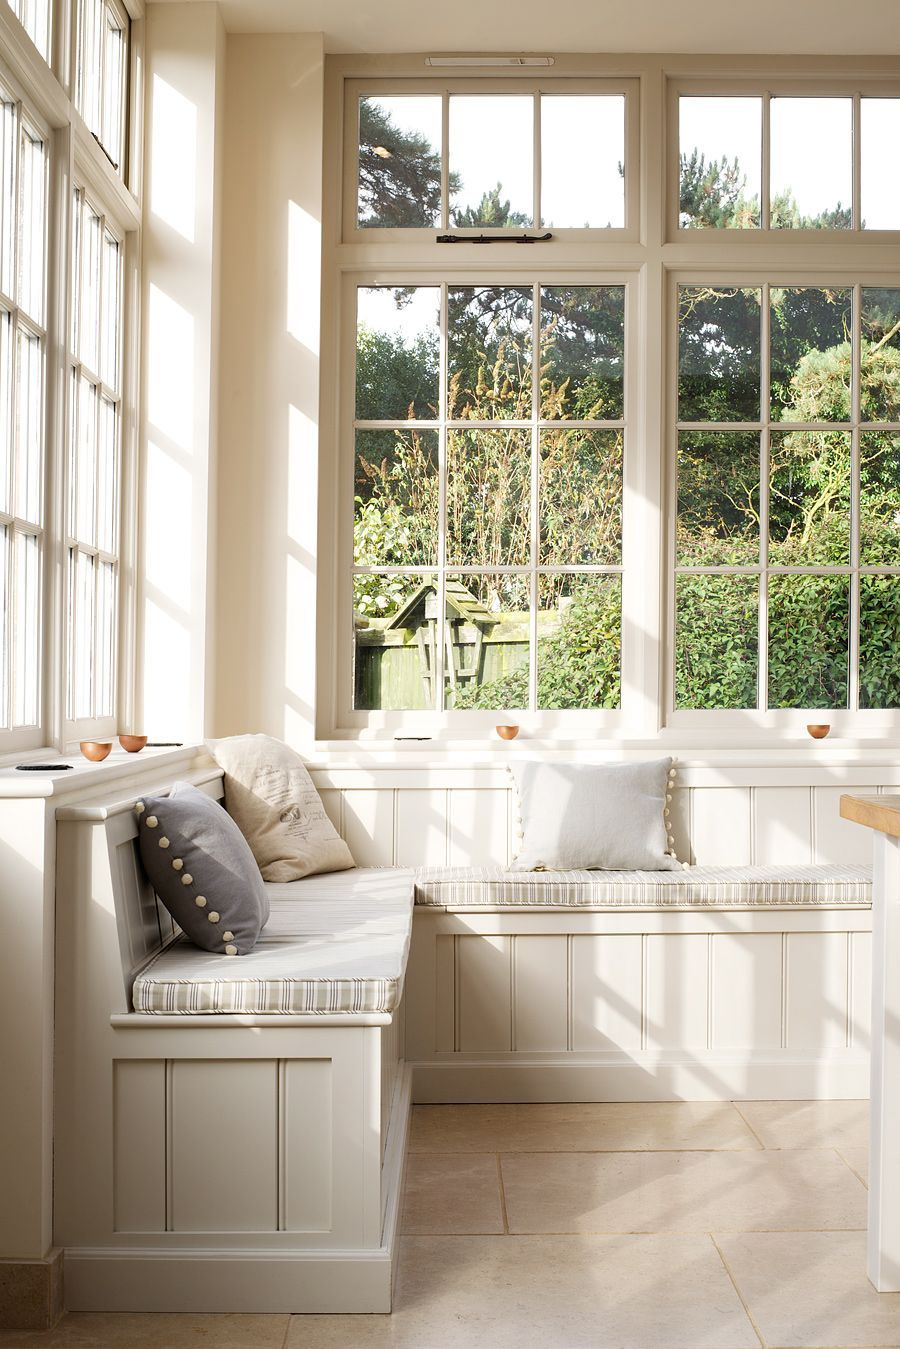 Modern window ideas   bay window ideas blending functionality with modern interior